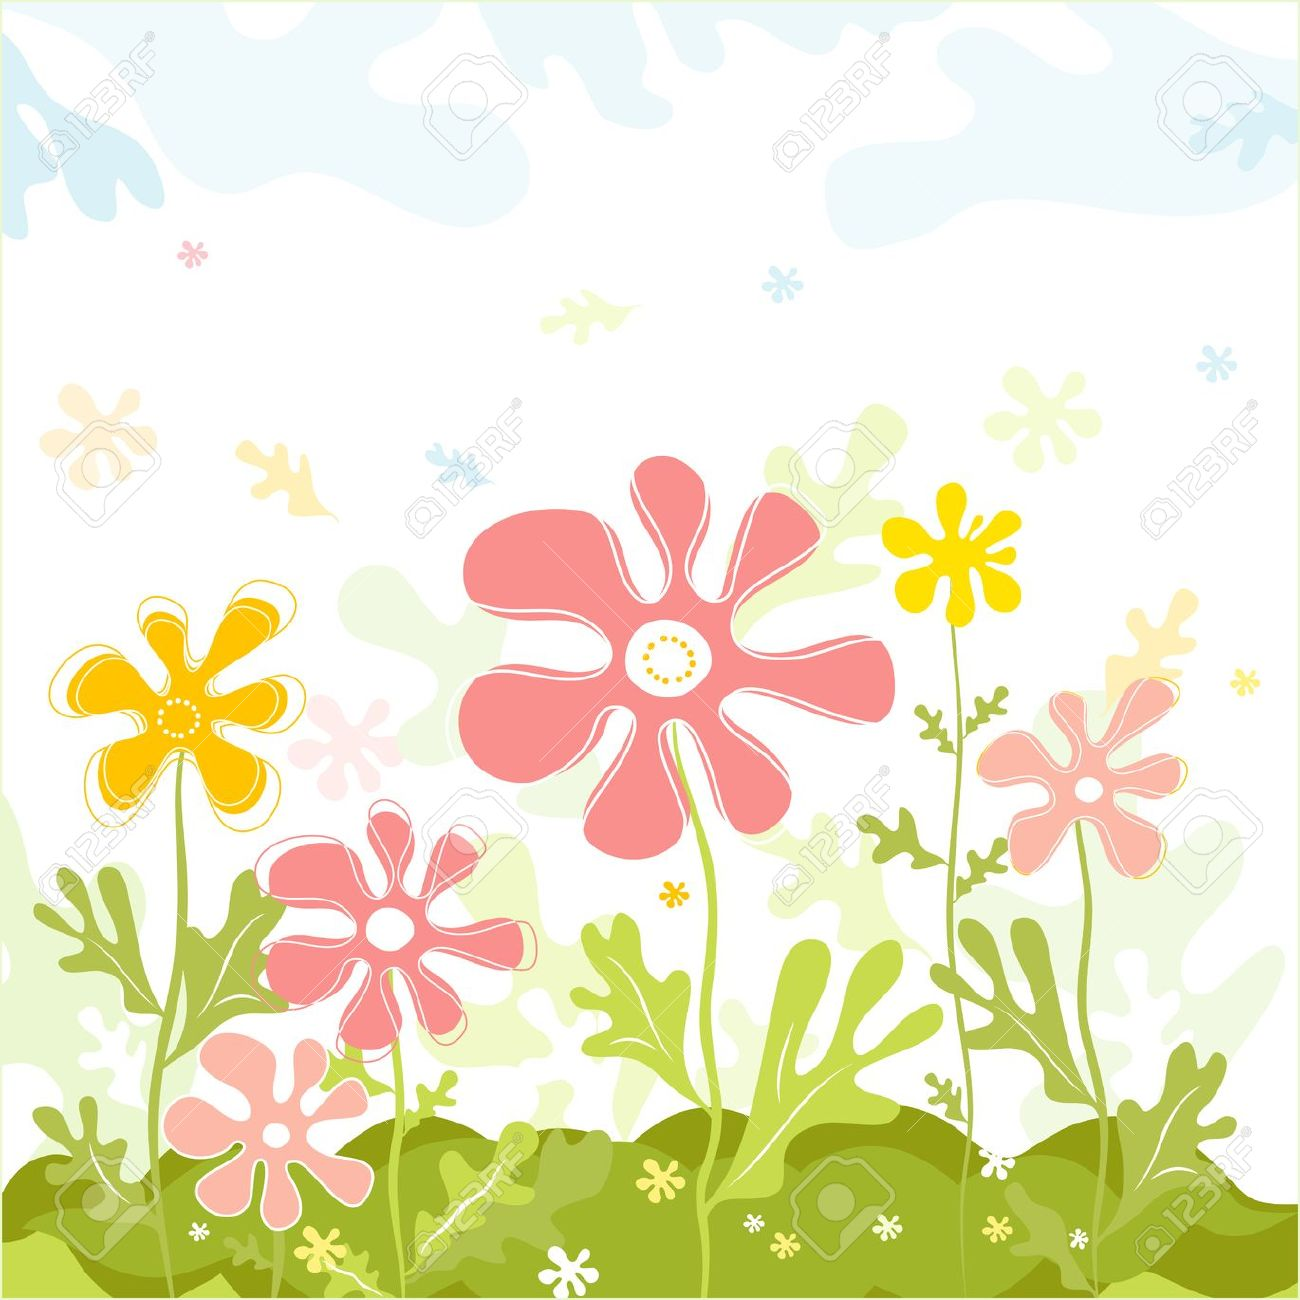 Color spring clipart.